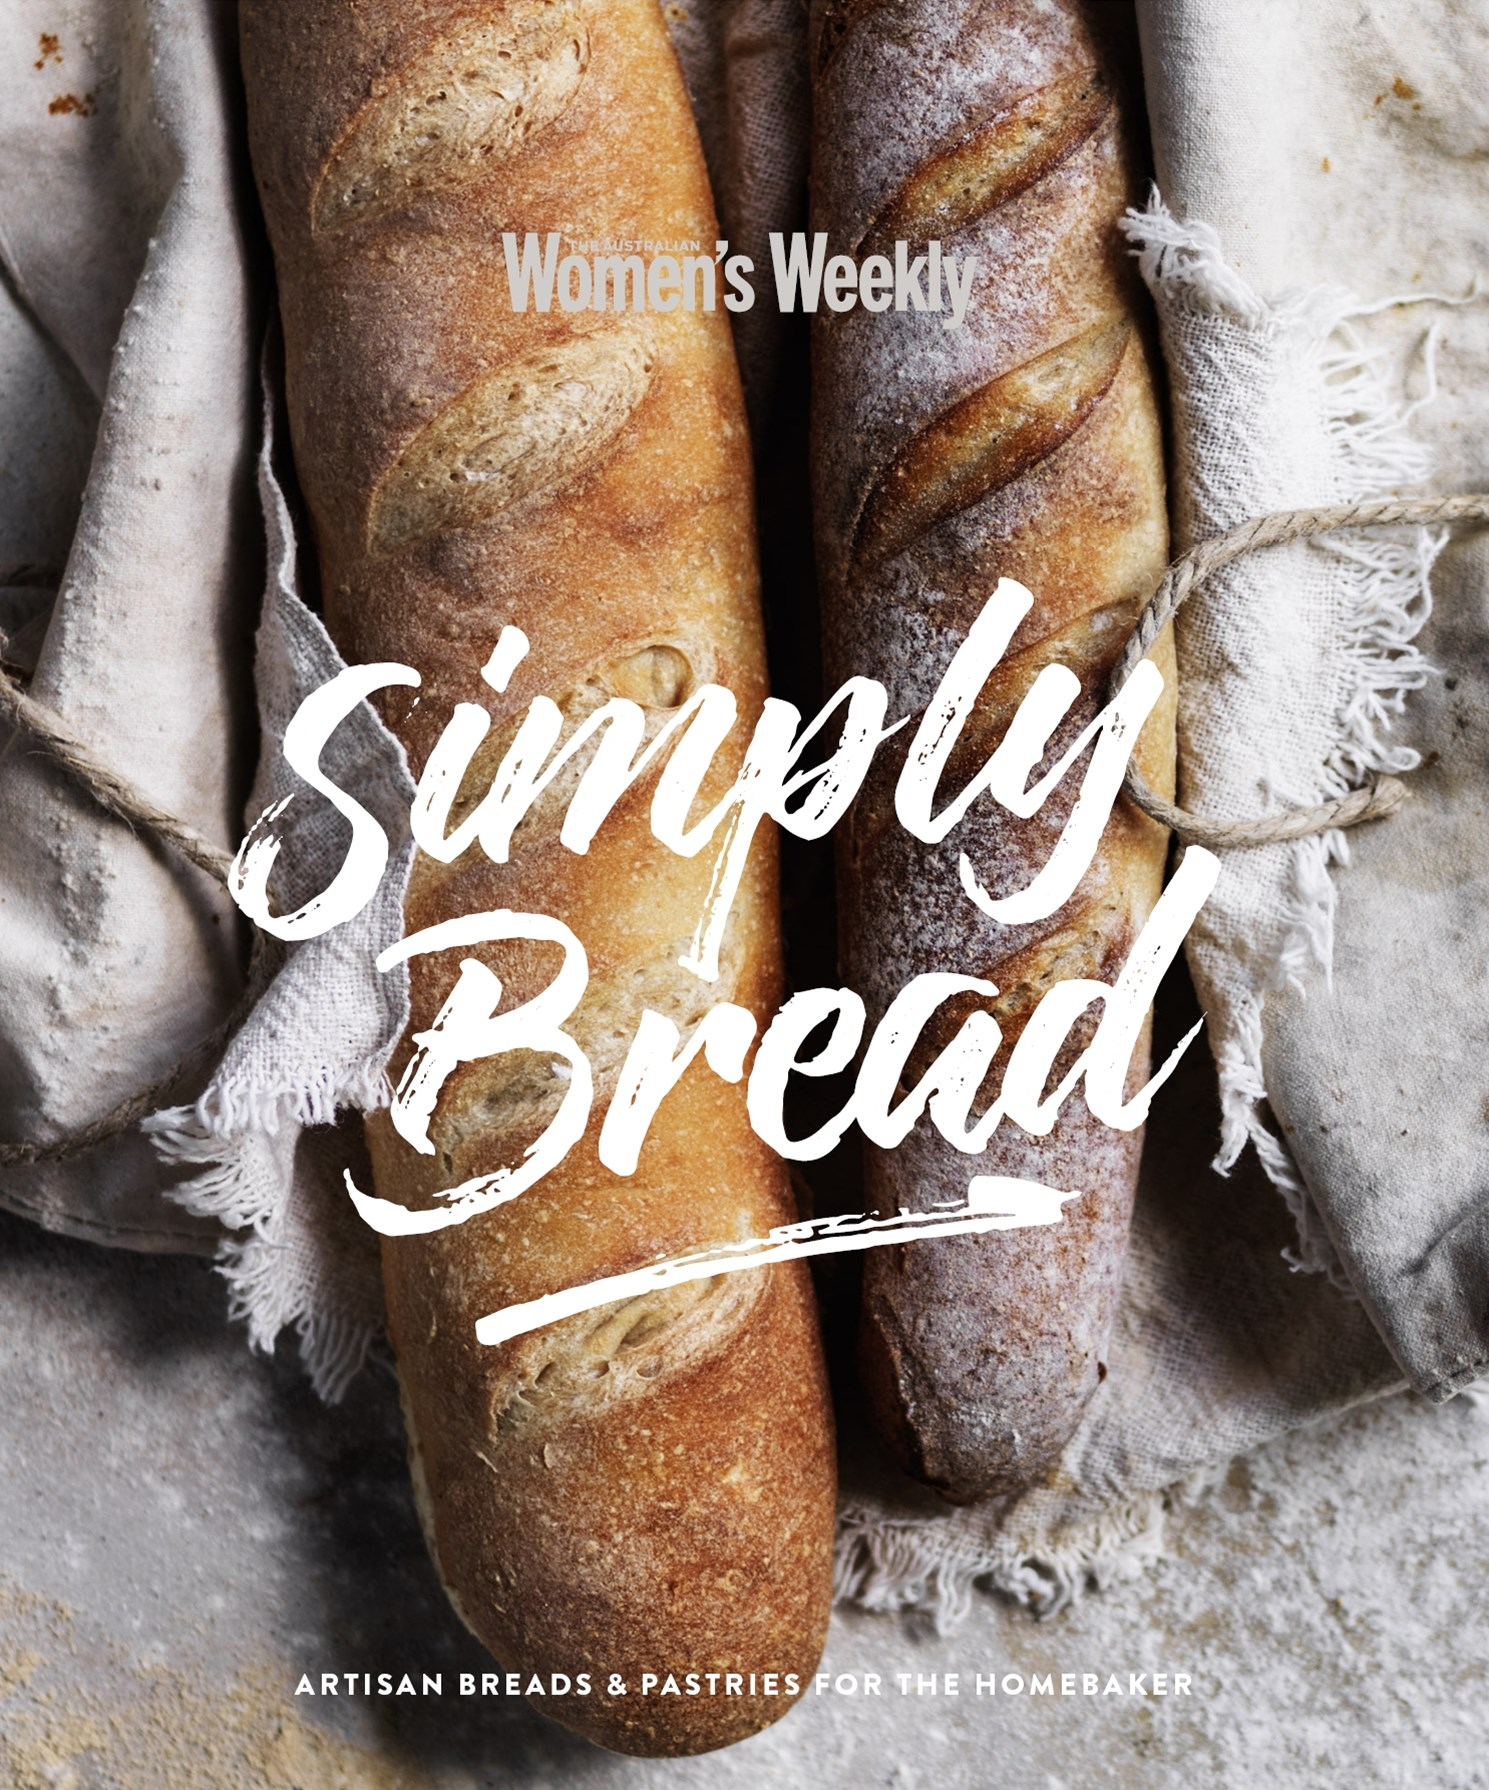 Simply Bread: Artisan Breads and Pastries for the Homebaker